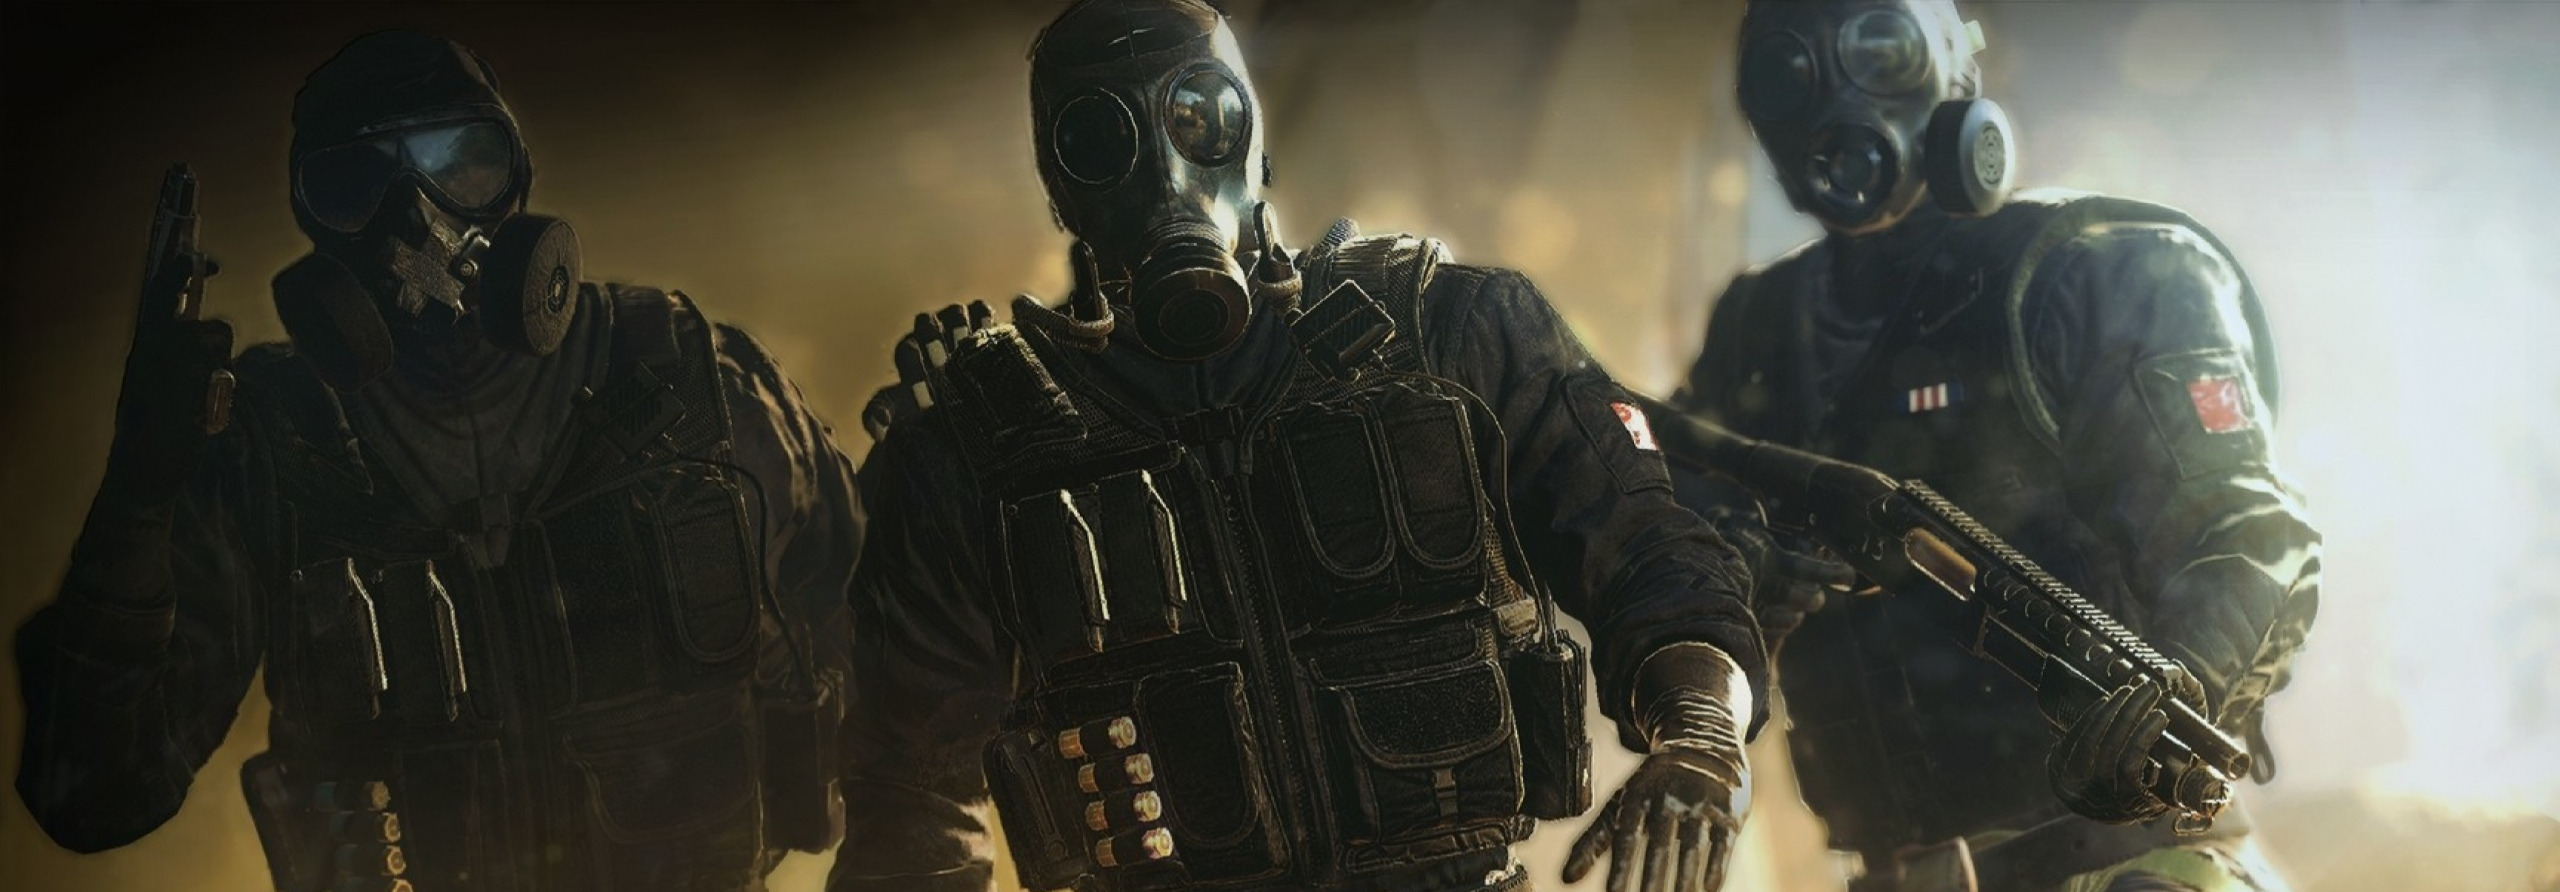 tom_clancy_s_rainbow_six_siege_106335_25